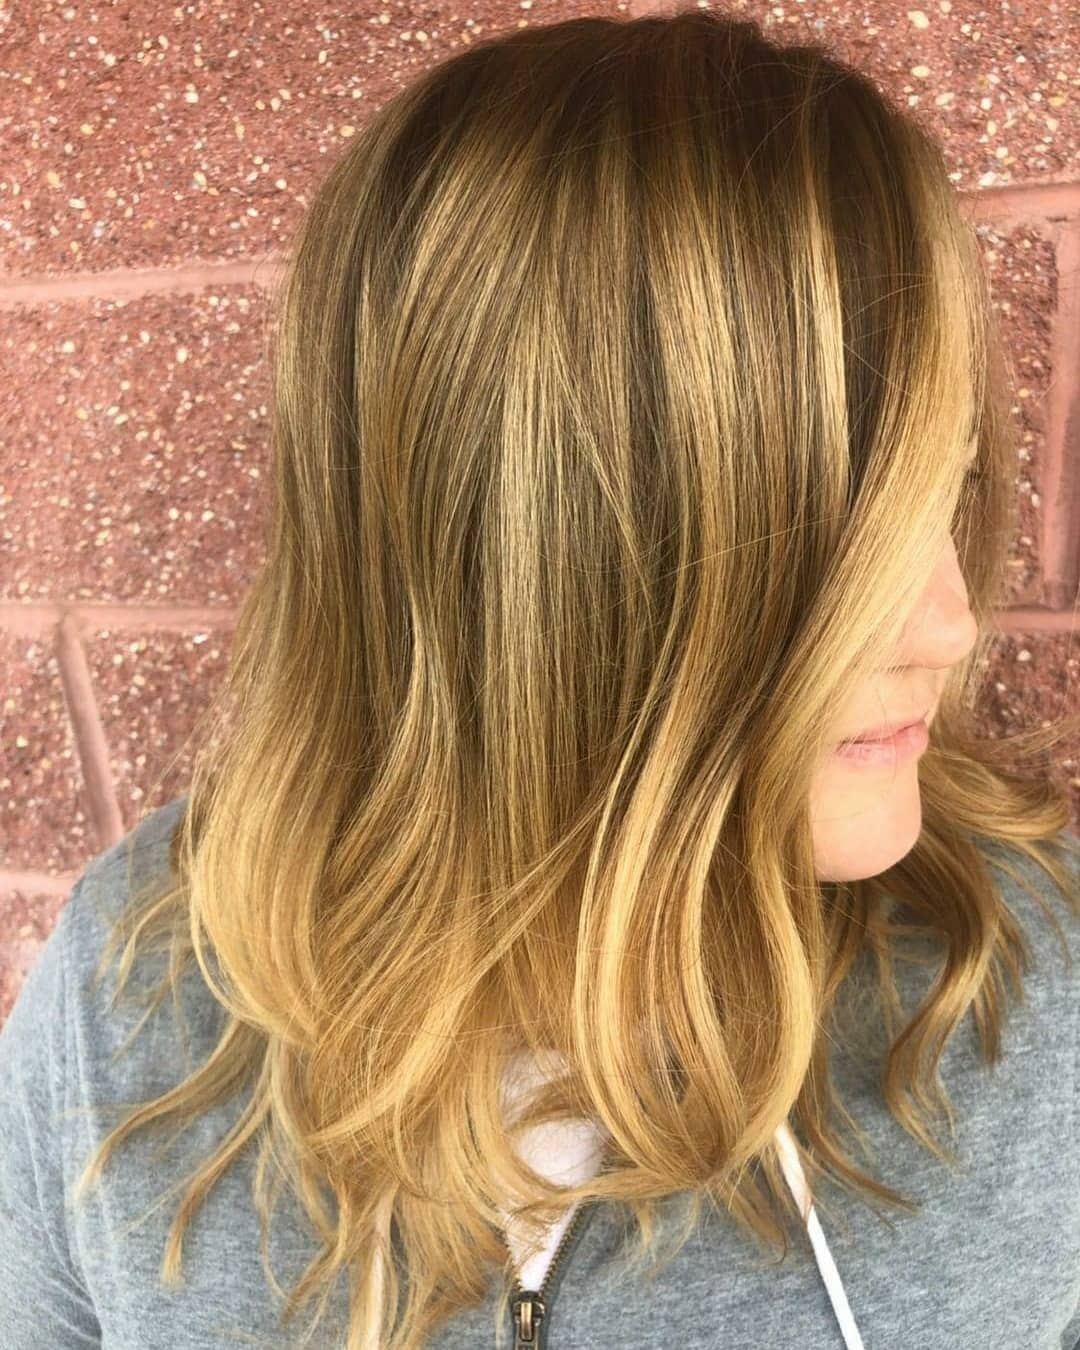 Hair Color Trend Honey Bronde The Official Blog Of Hair Cuttery